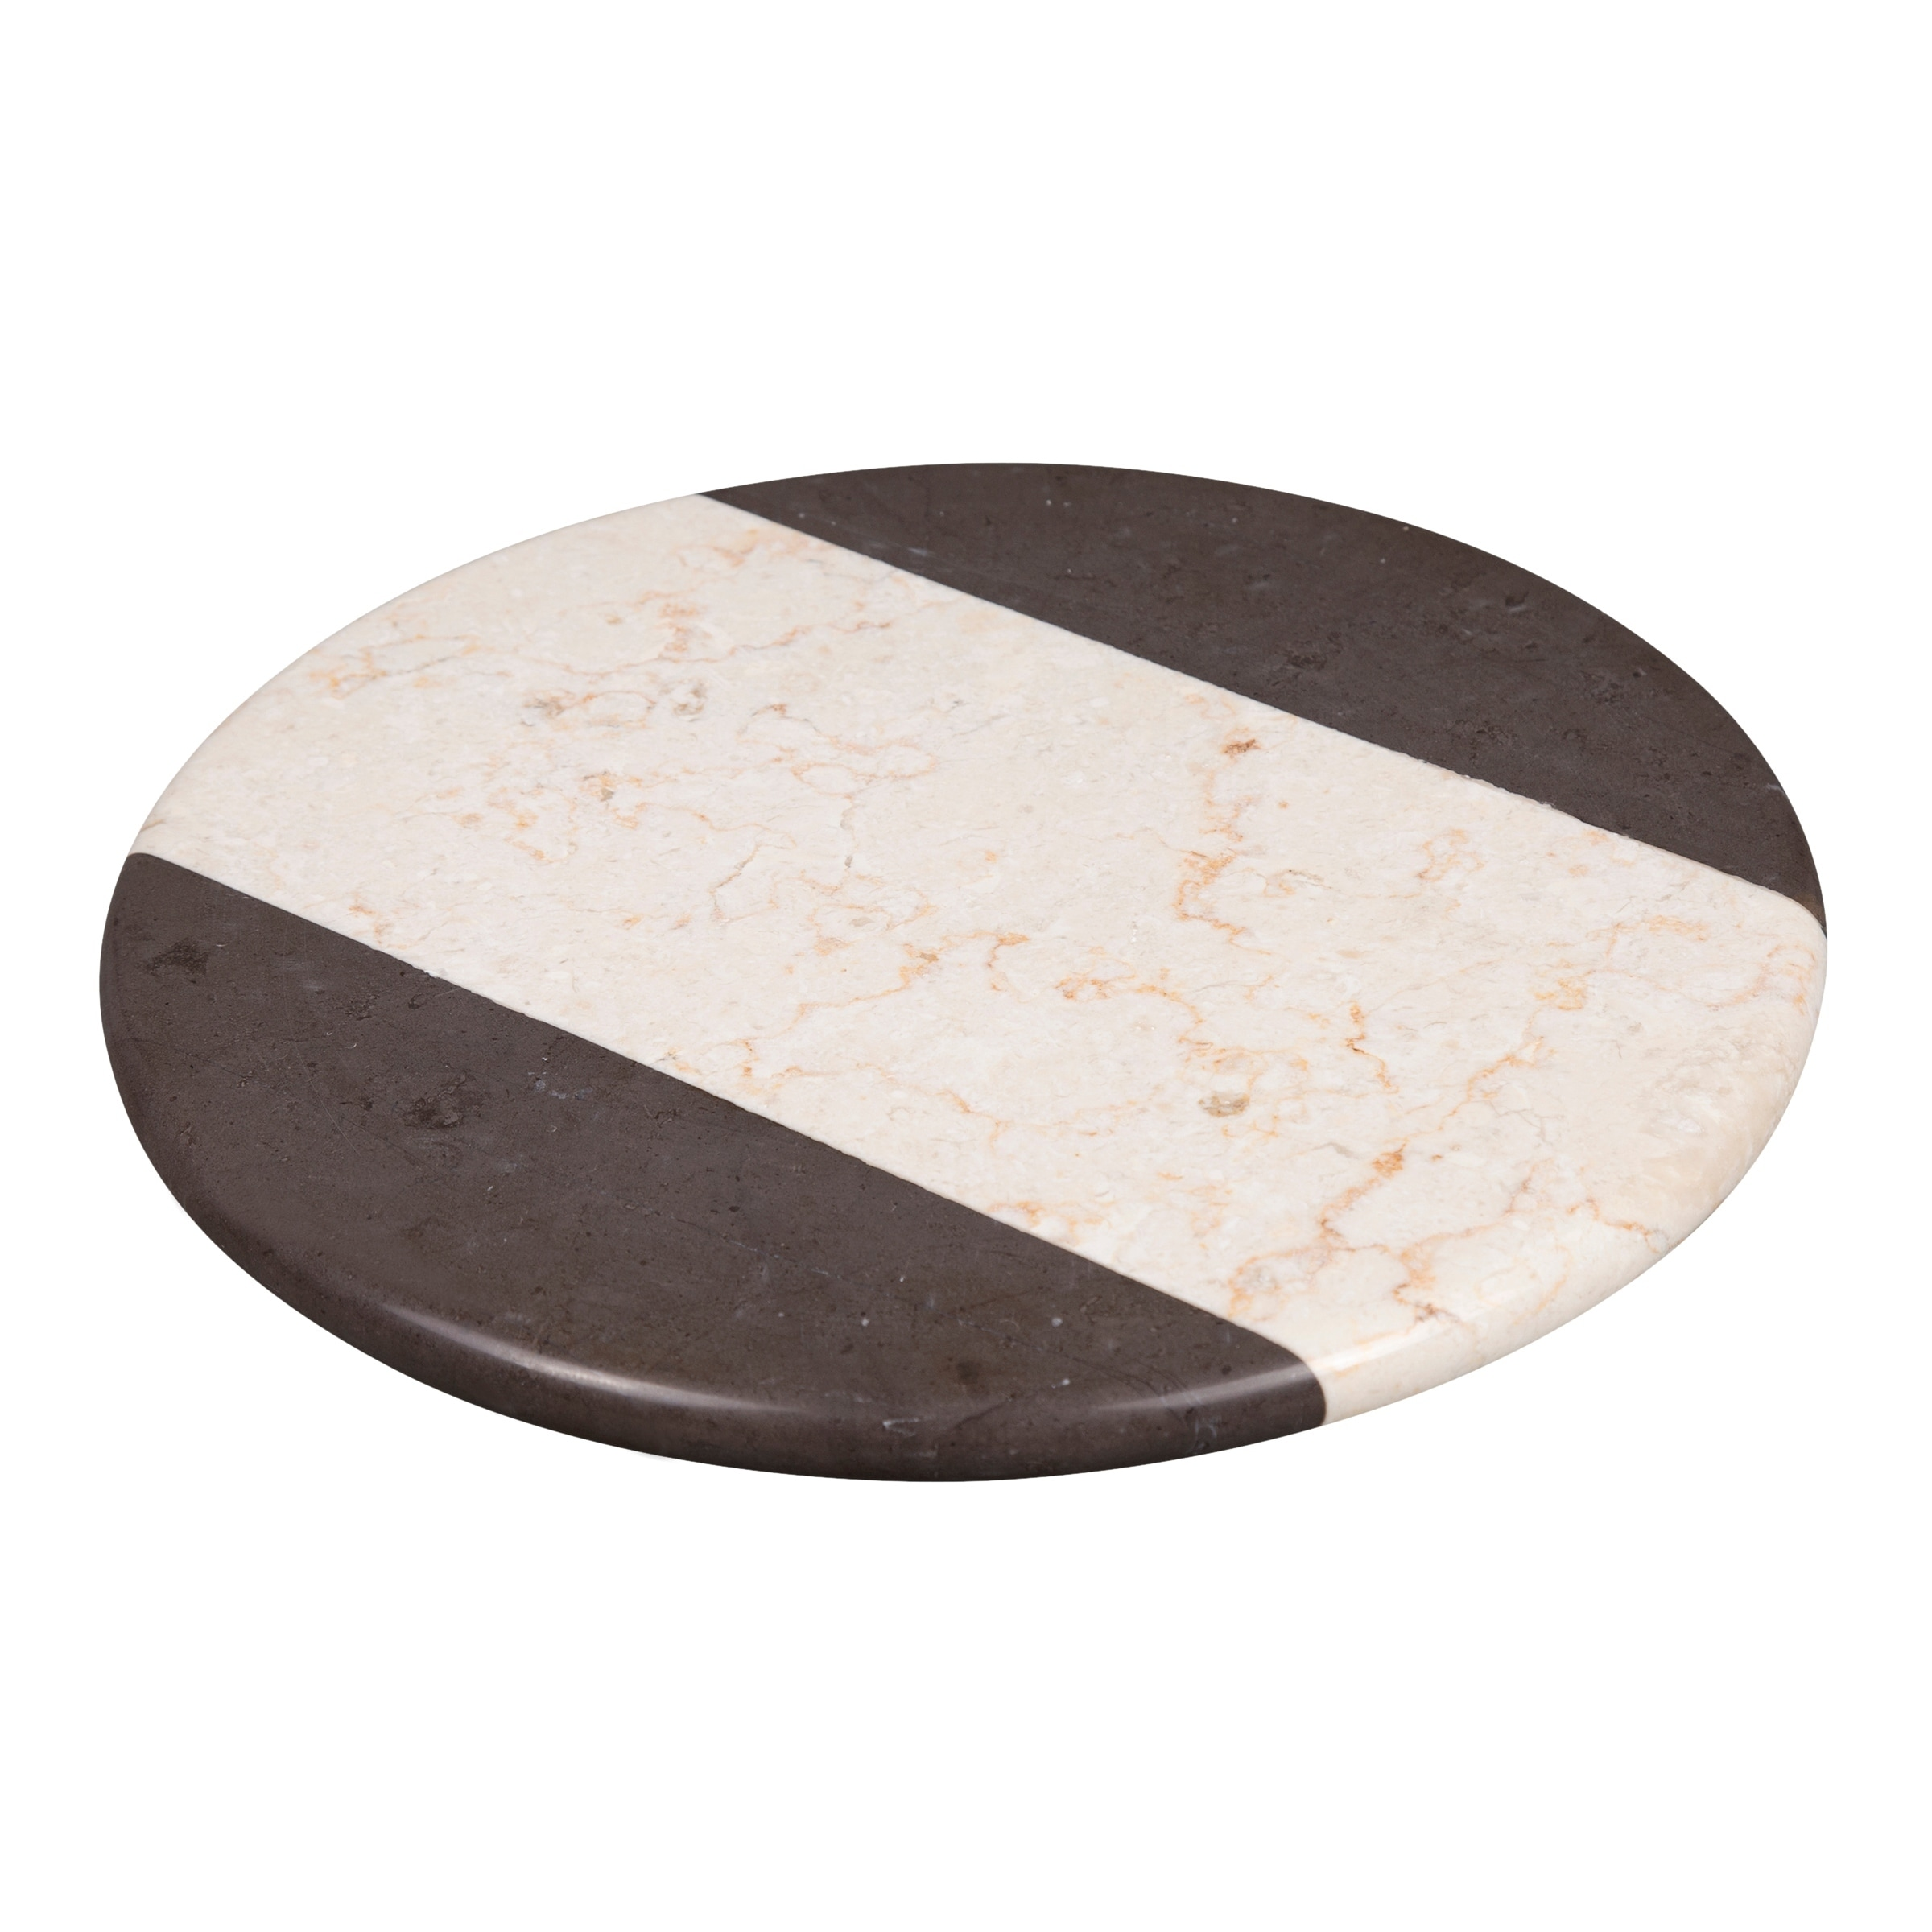 Creative Home 2 Tone Marble 12 Lazy Susan Rotating Serving Board Overstock 30355147